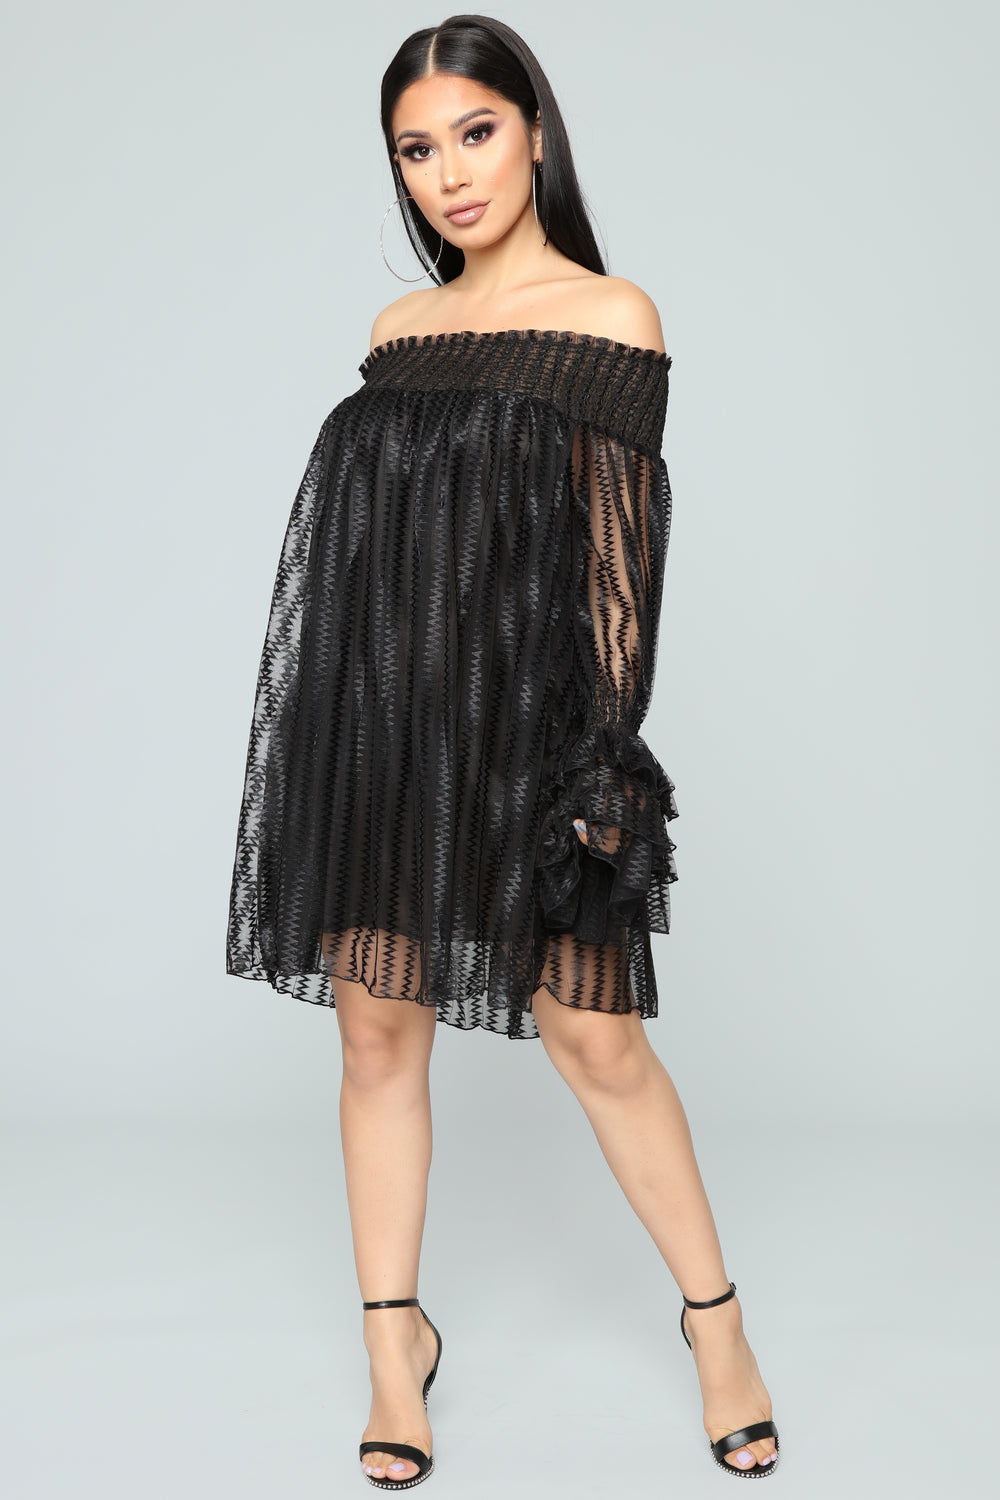 Boogie Nights Off Shoulder Dress - Black